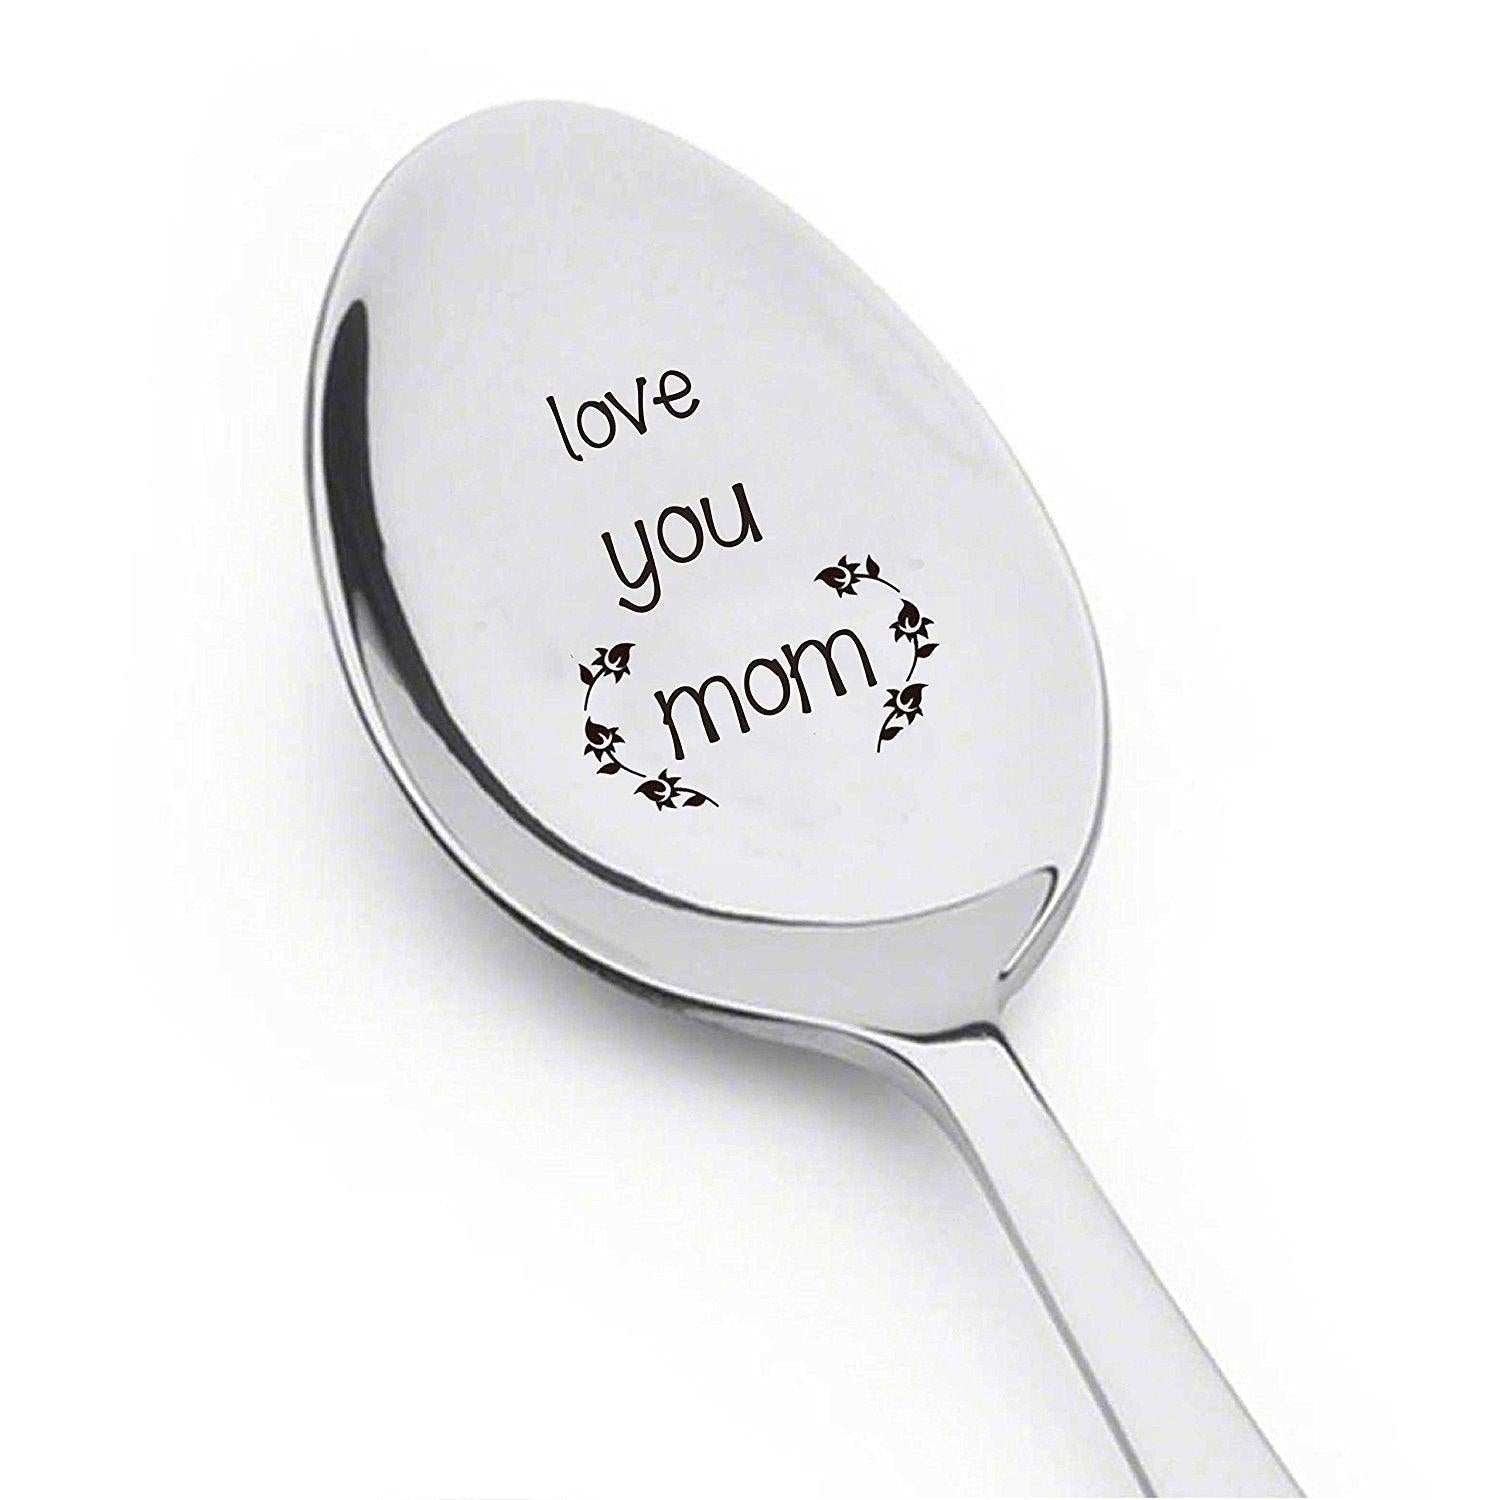 Love You Mom - Coffee Spoon mom Gift - Flatware Spoon -Trendy spoon- Cute Spoon - BOSTON CREATIVE COMPANY